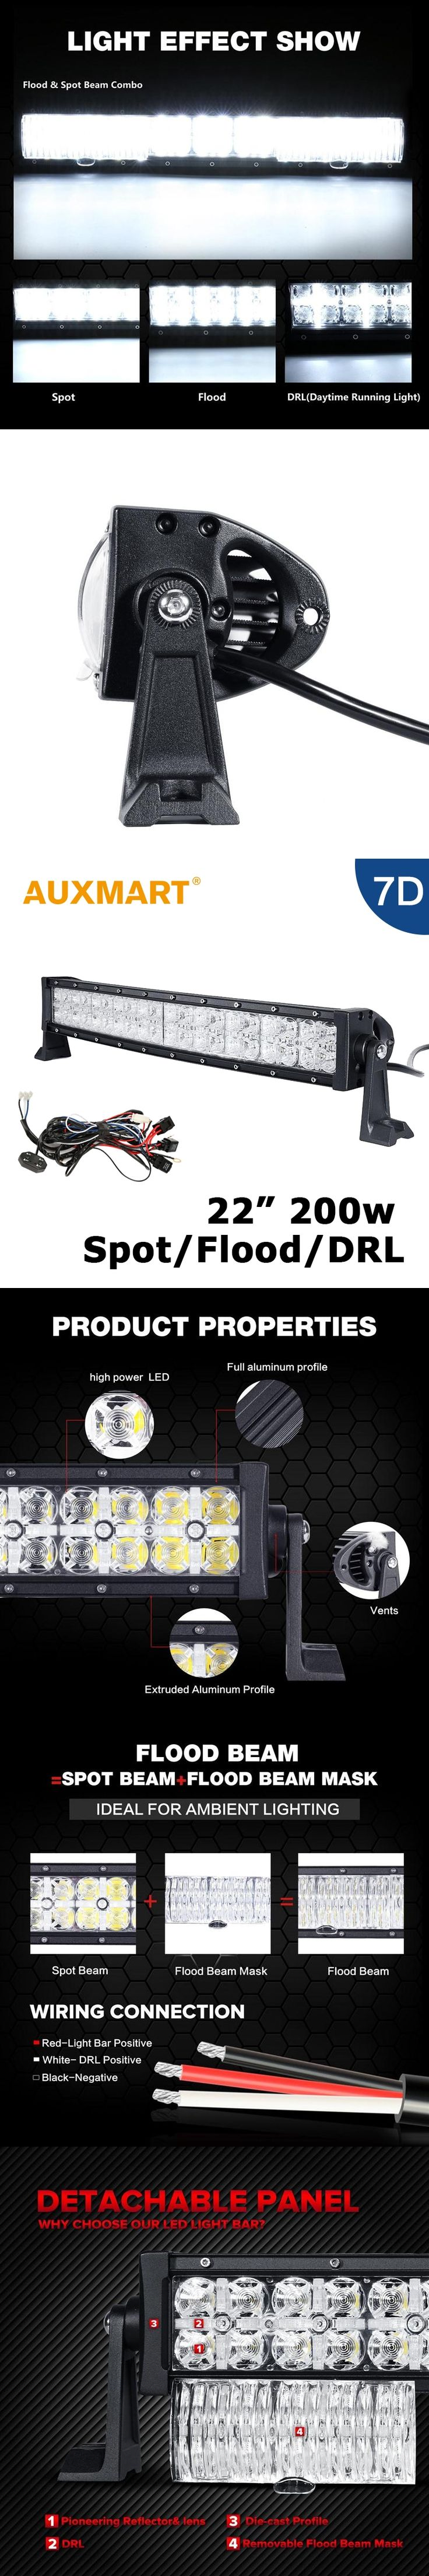 Auxmart Curved LED Light Bar 200W CREE Chips 22 inch 7D Offroad Light Bar 4X4 Truck ATV RZR Trailer 4WD Tractor 12V 24V